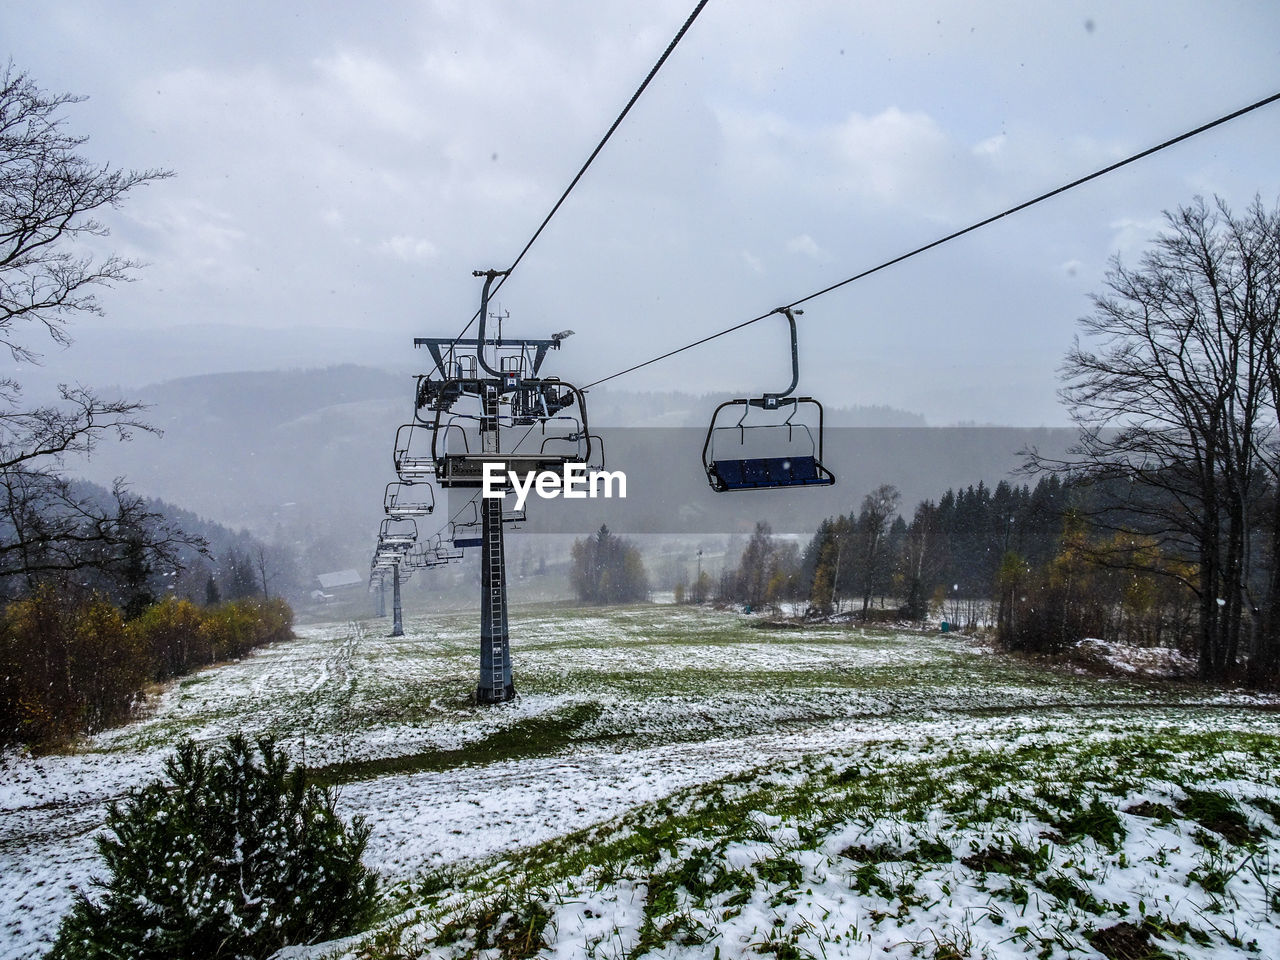 winter, cold temperature, snow, weather, nature, beauty in nature, transportation, sky, day, scenics, tree, cable, cloud - sky, outdoors, tranquility, no people, landscape, overhead cable car, ski lift, mountain